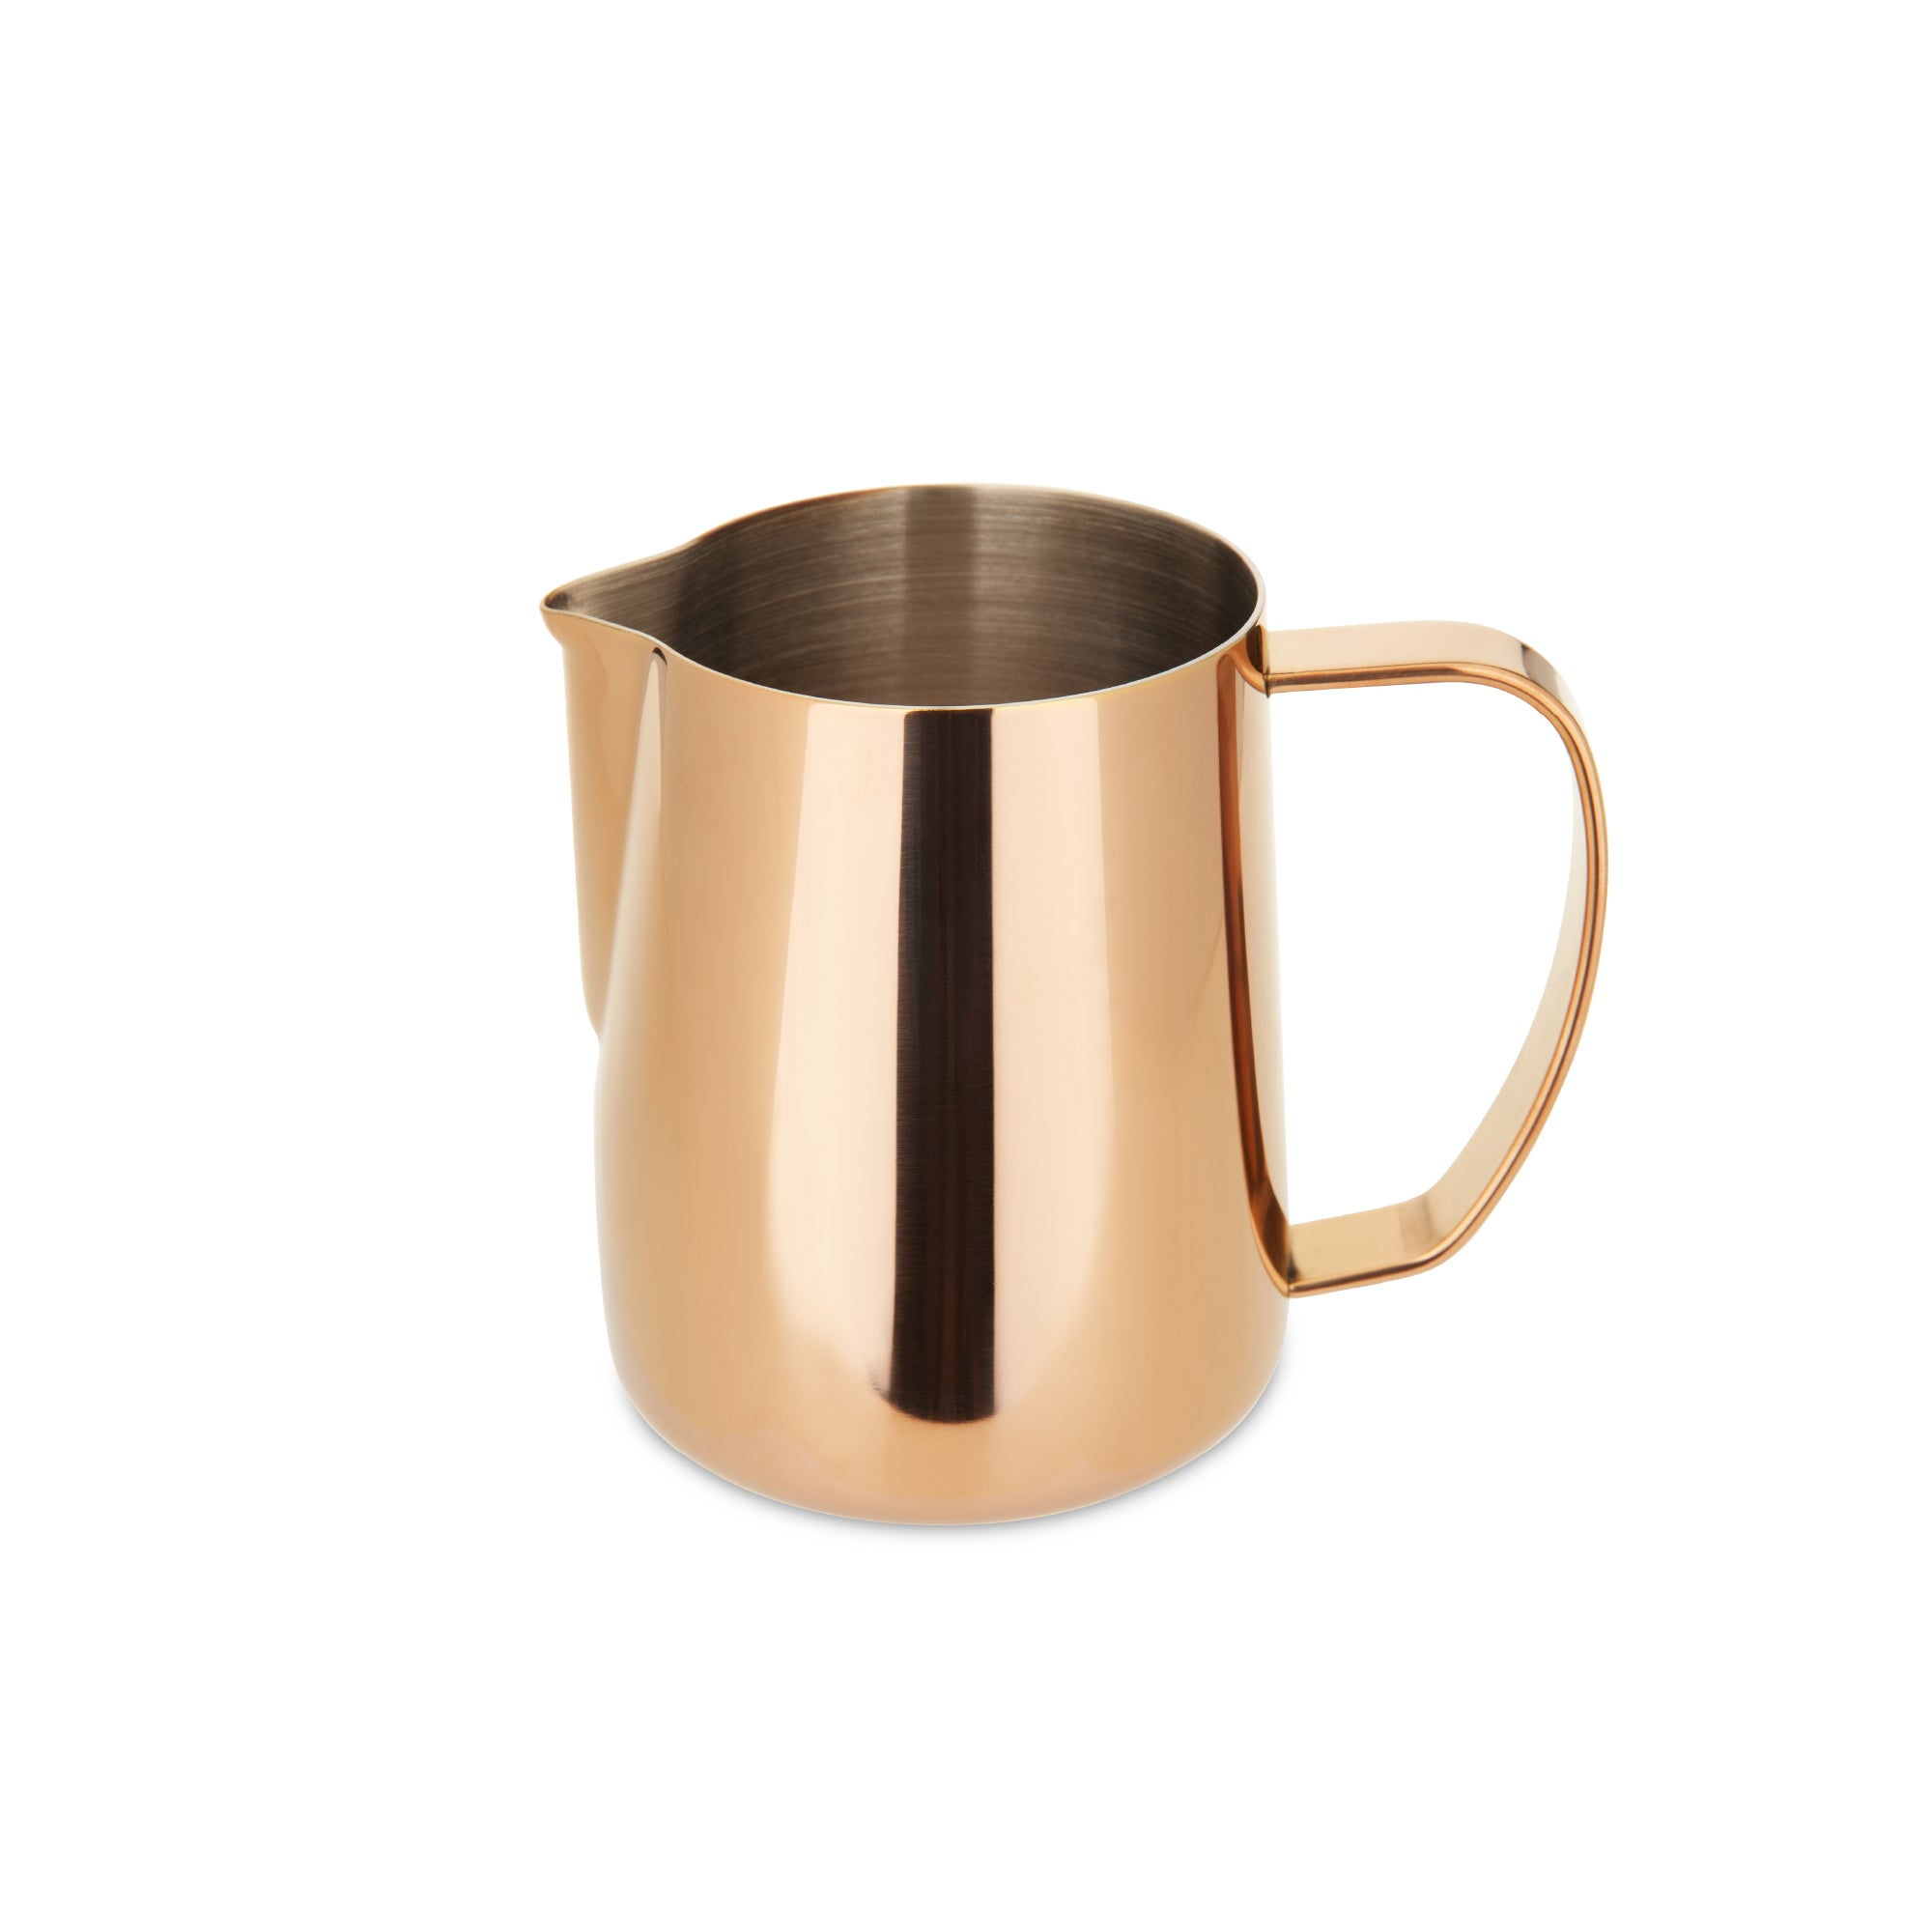 EspressoWorks Stainless Steel Milk Frothing Jug - Rose Gold (600ml)